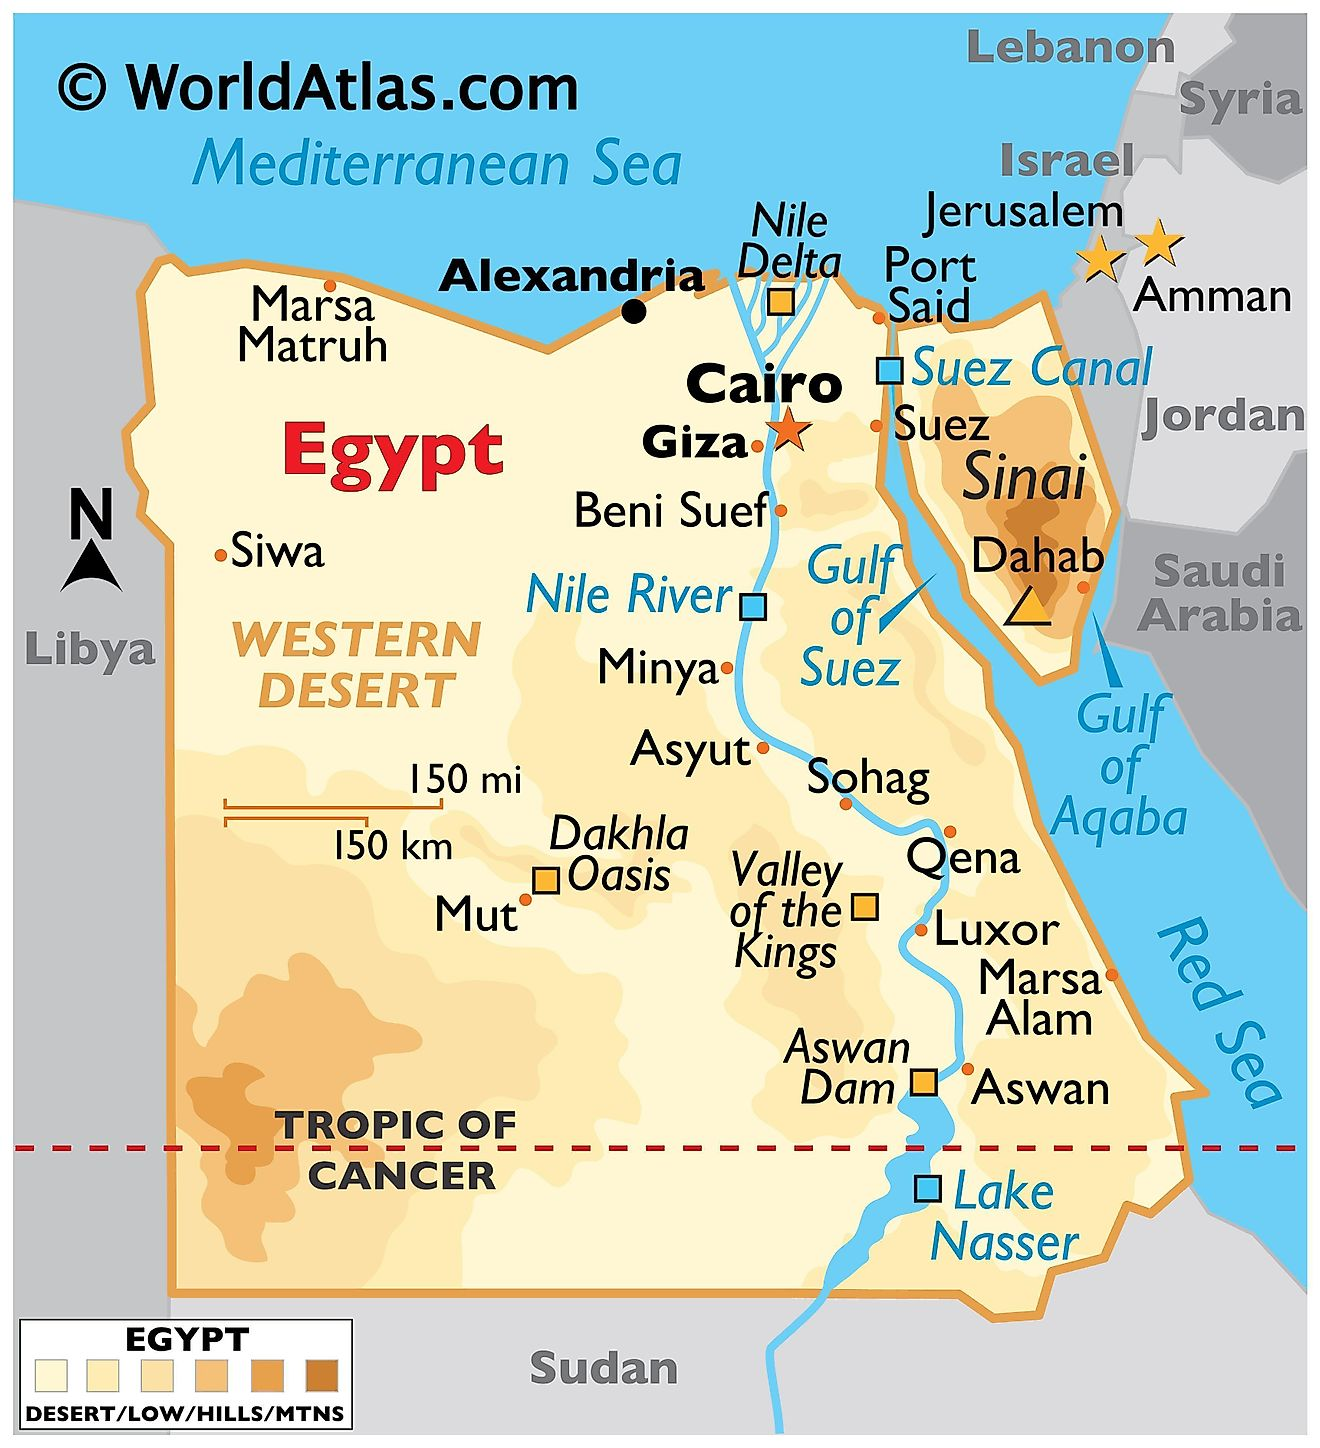 Physical Map of Egypt showing the state boundaries, relief, the Nile River, major lakes, deserts, and important cities.